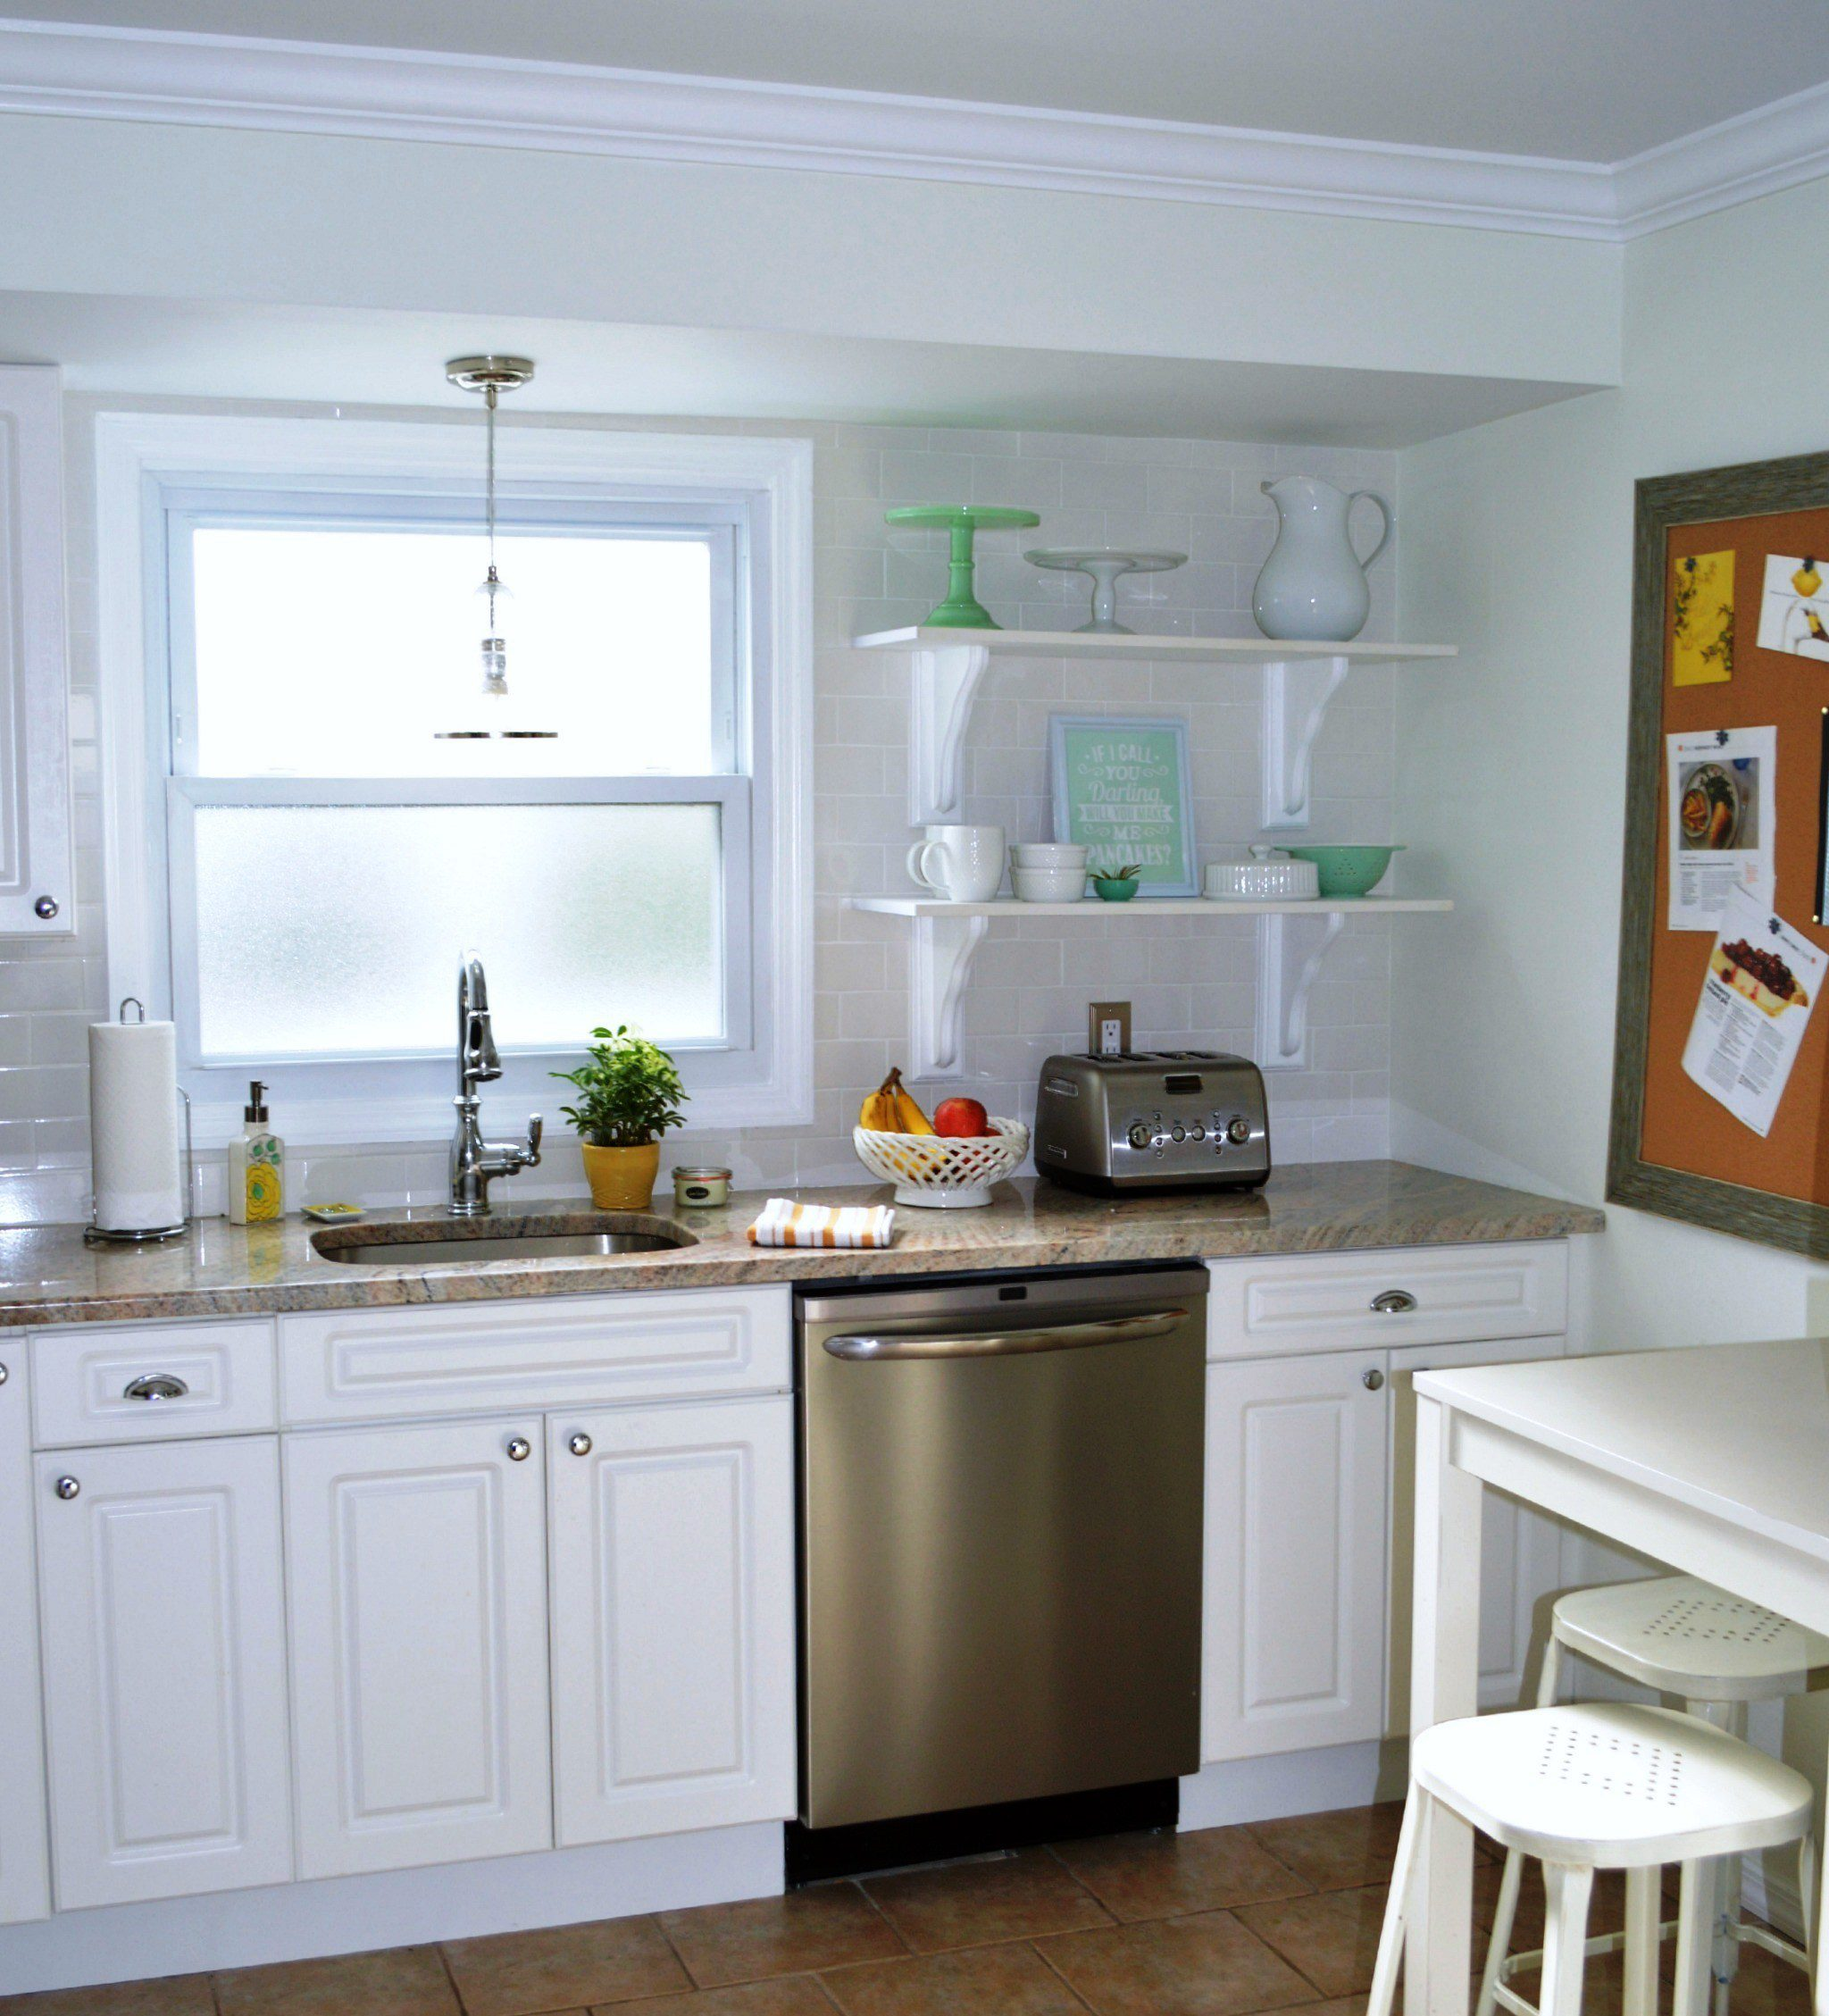 6 Creative Small Kitchen Design Ideas: Narrow And Small Kitchens